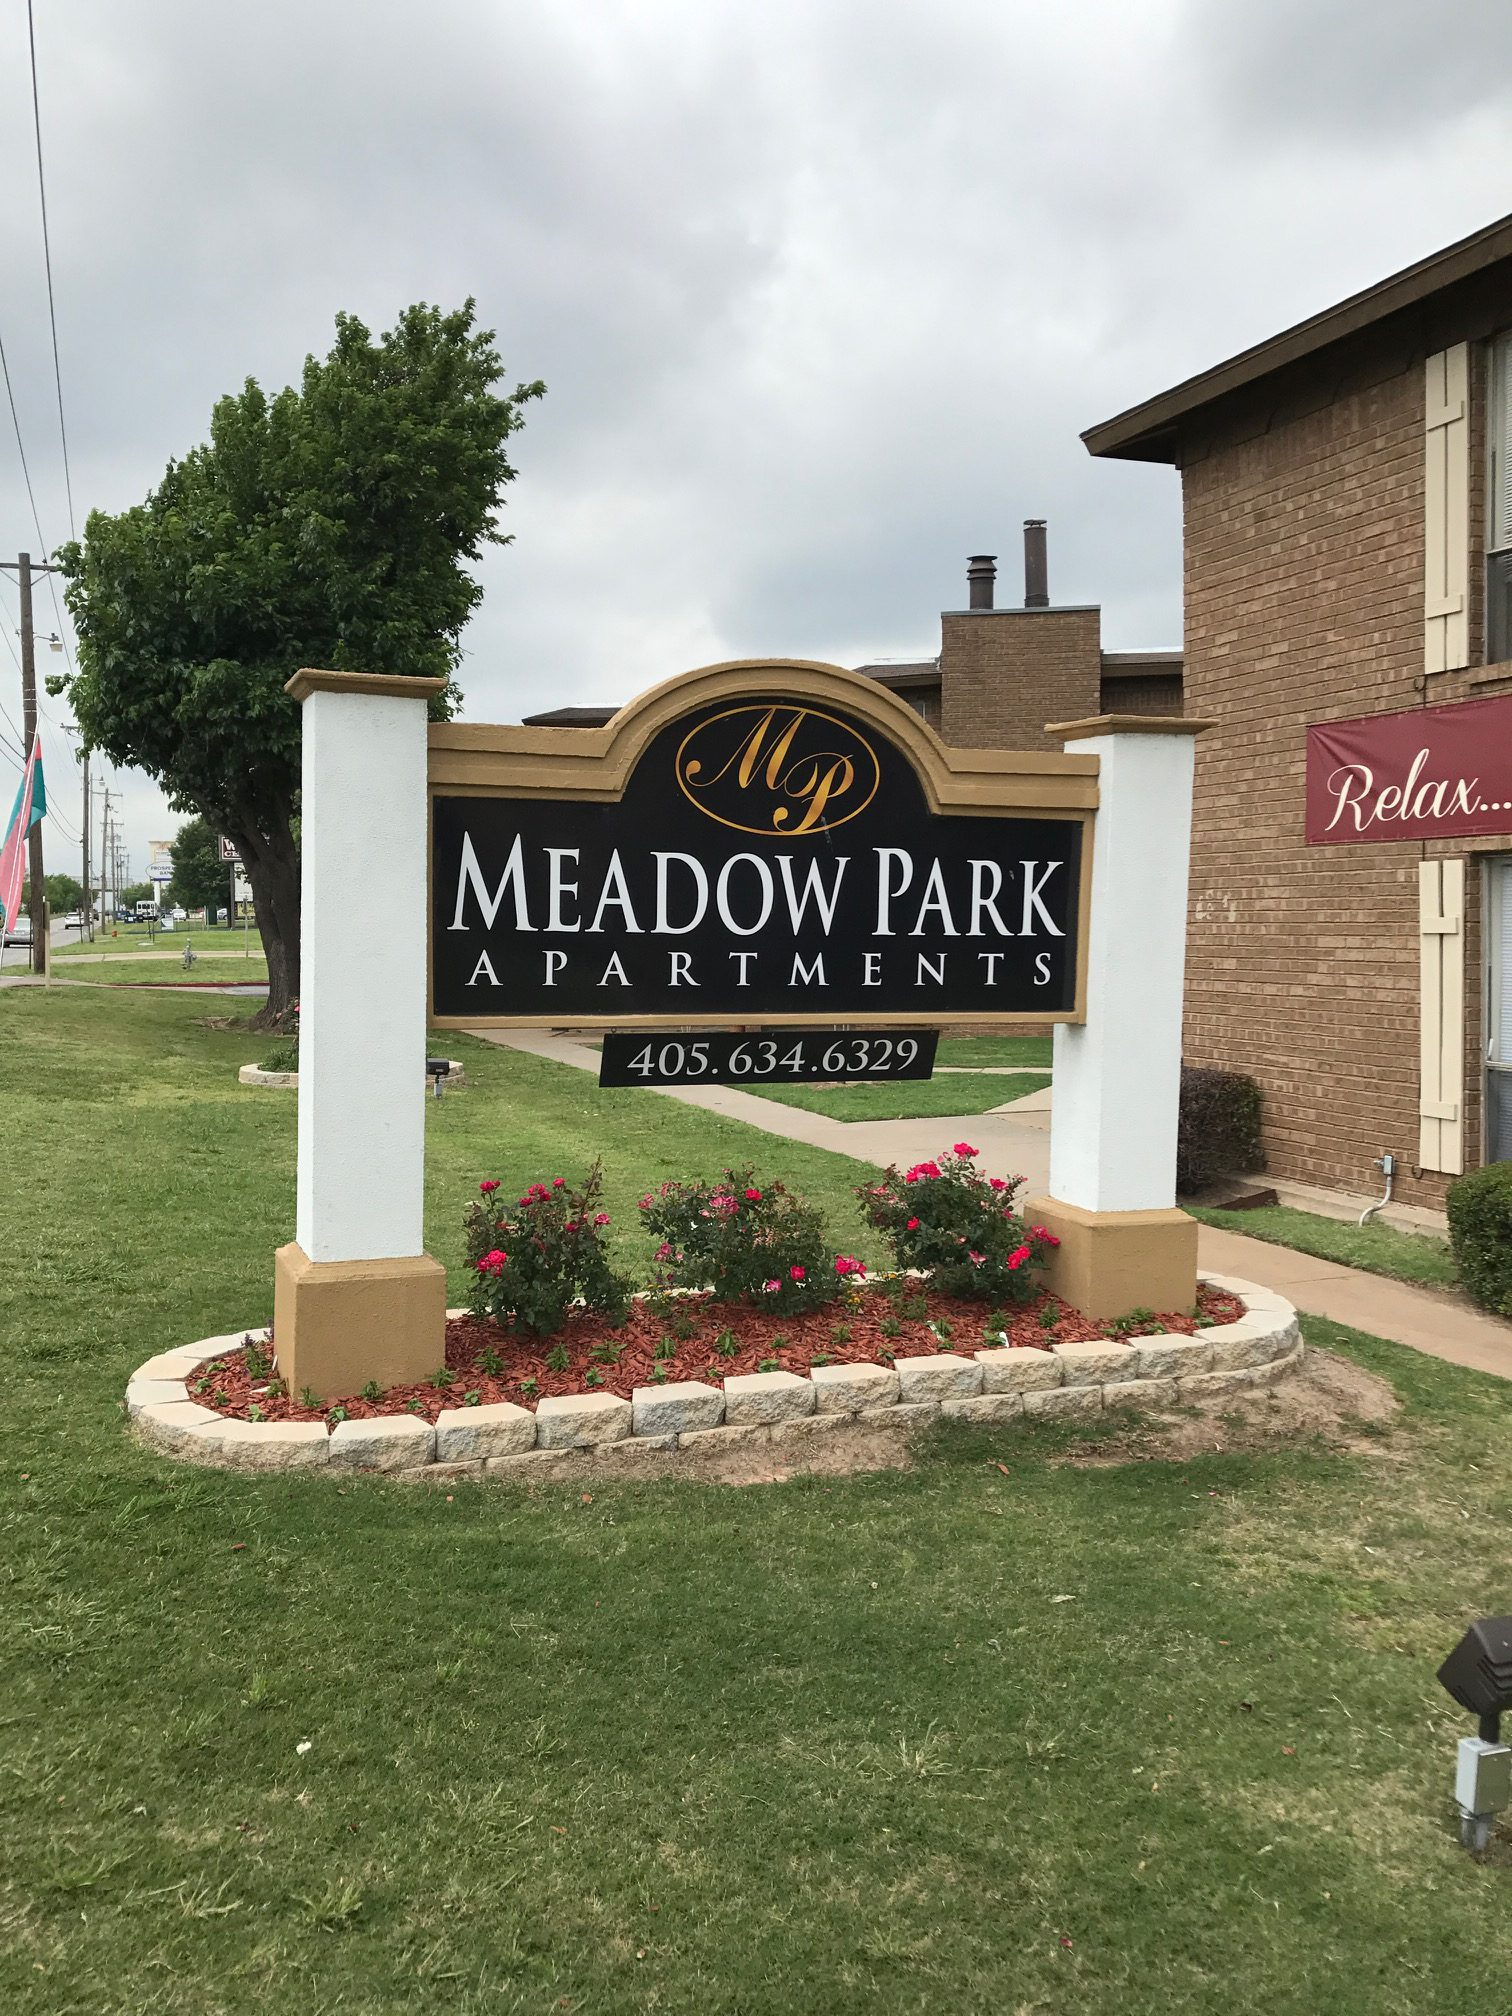 Meadow Park Apartments